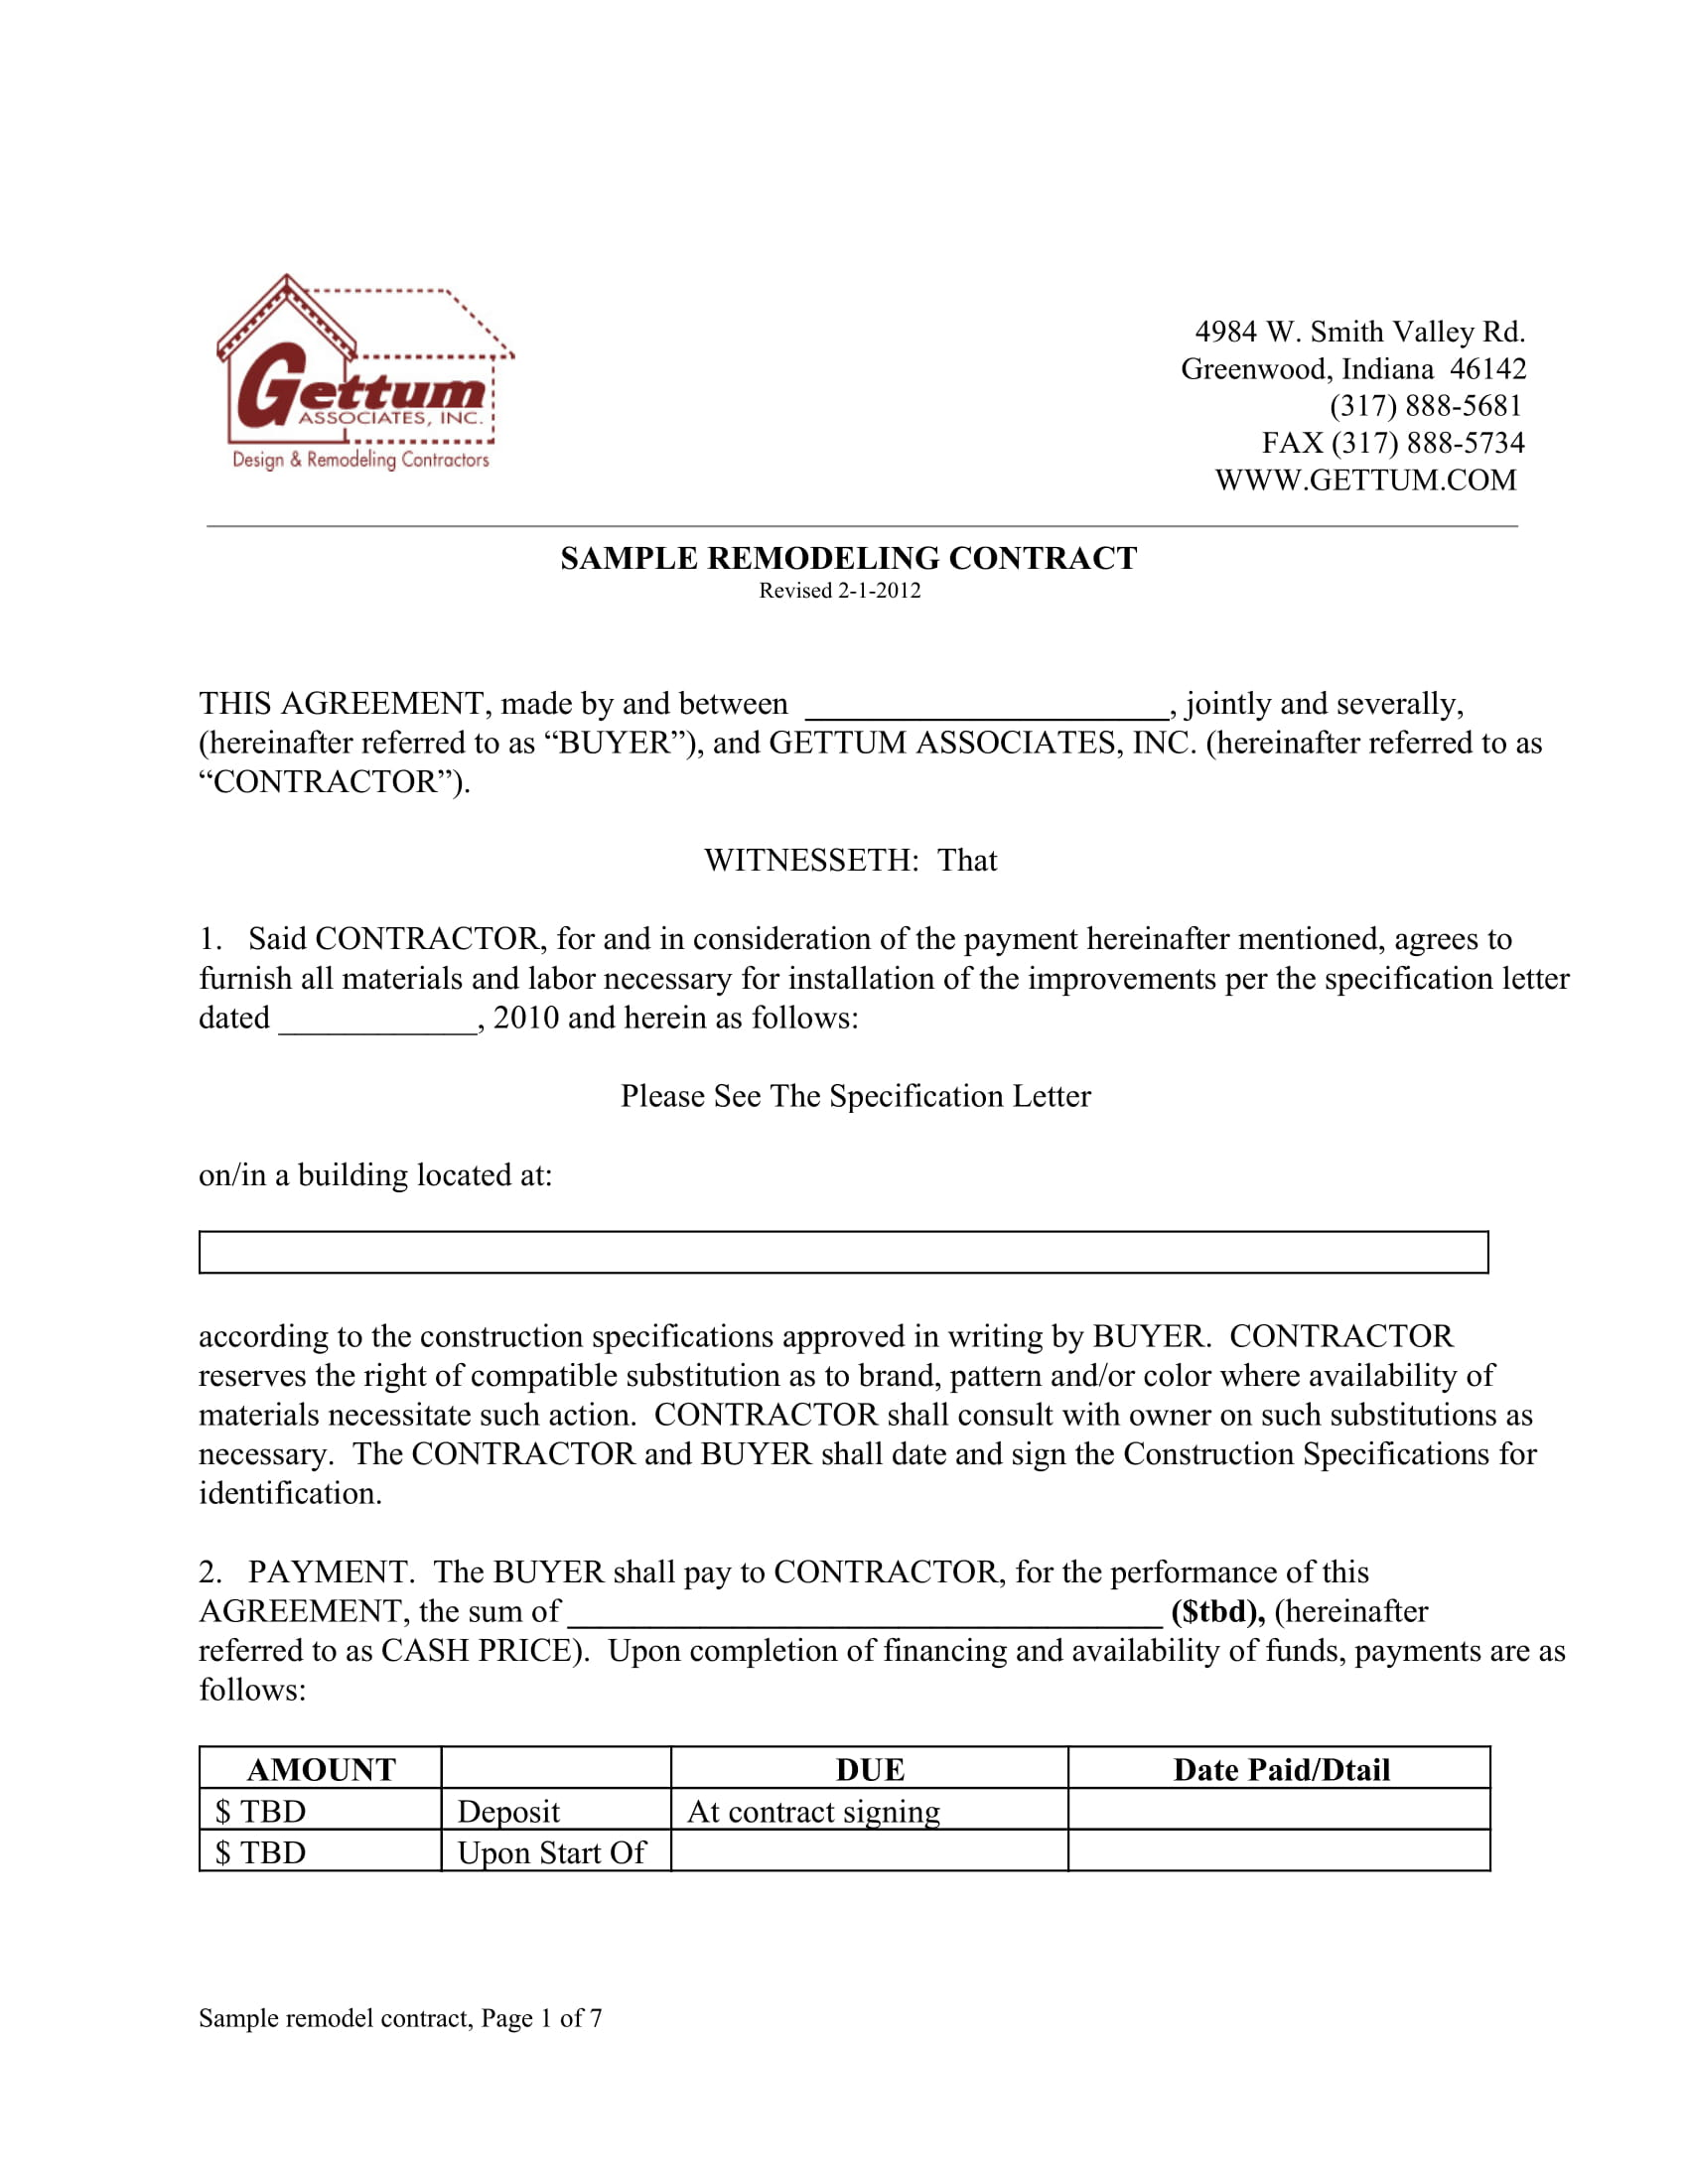 9 bathroom renovation contract template examples pdf for Bathroom renovation contract template